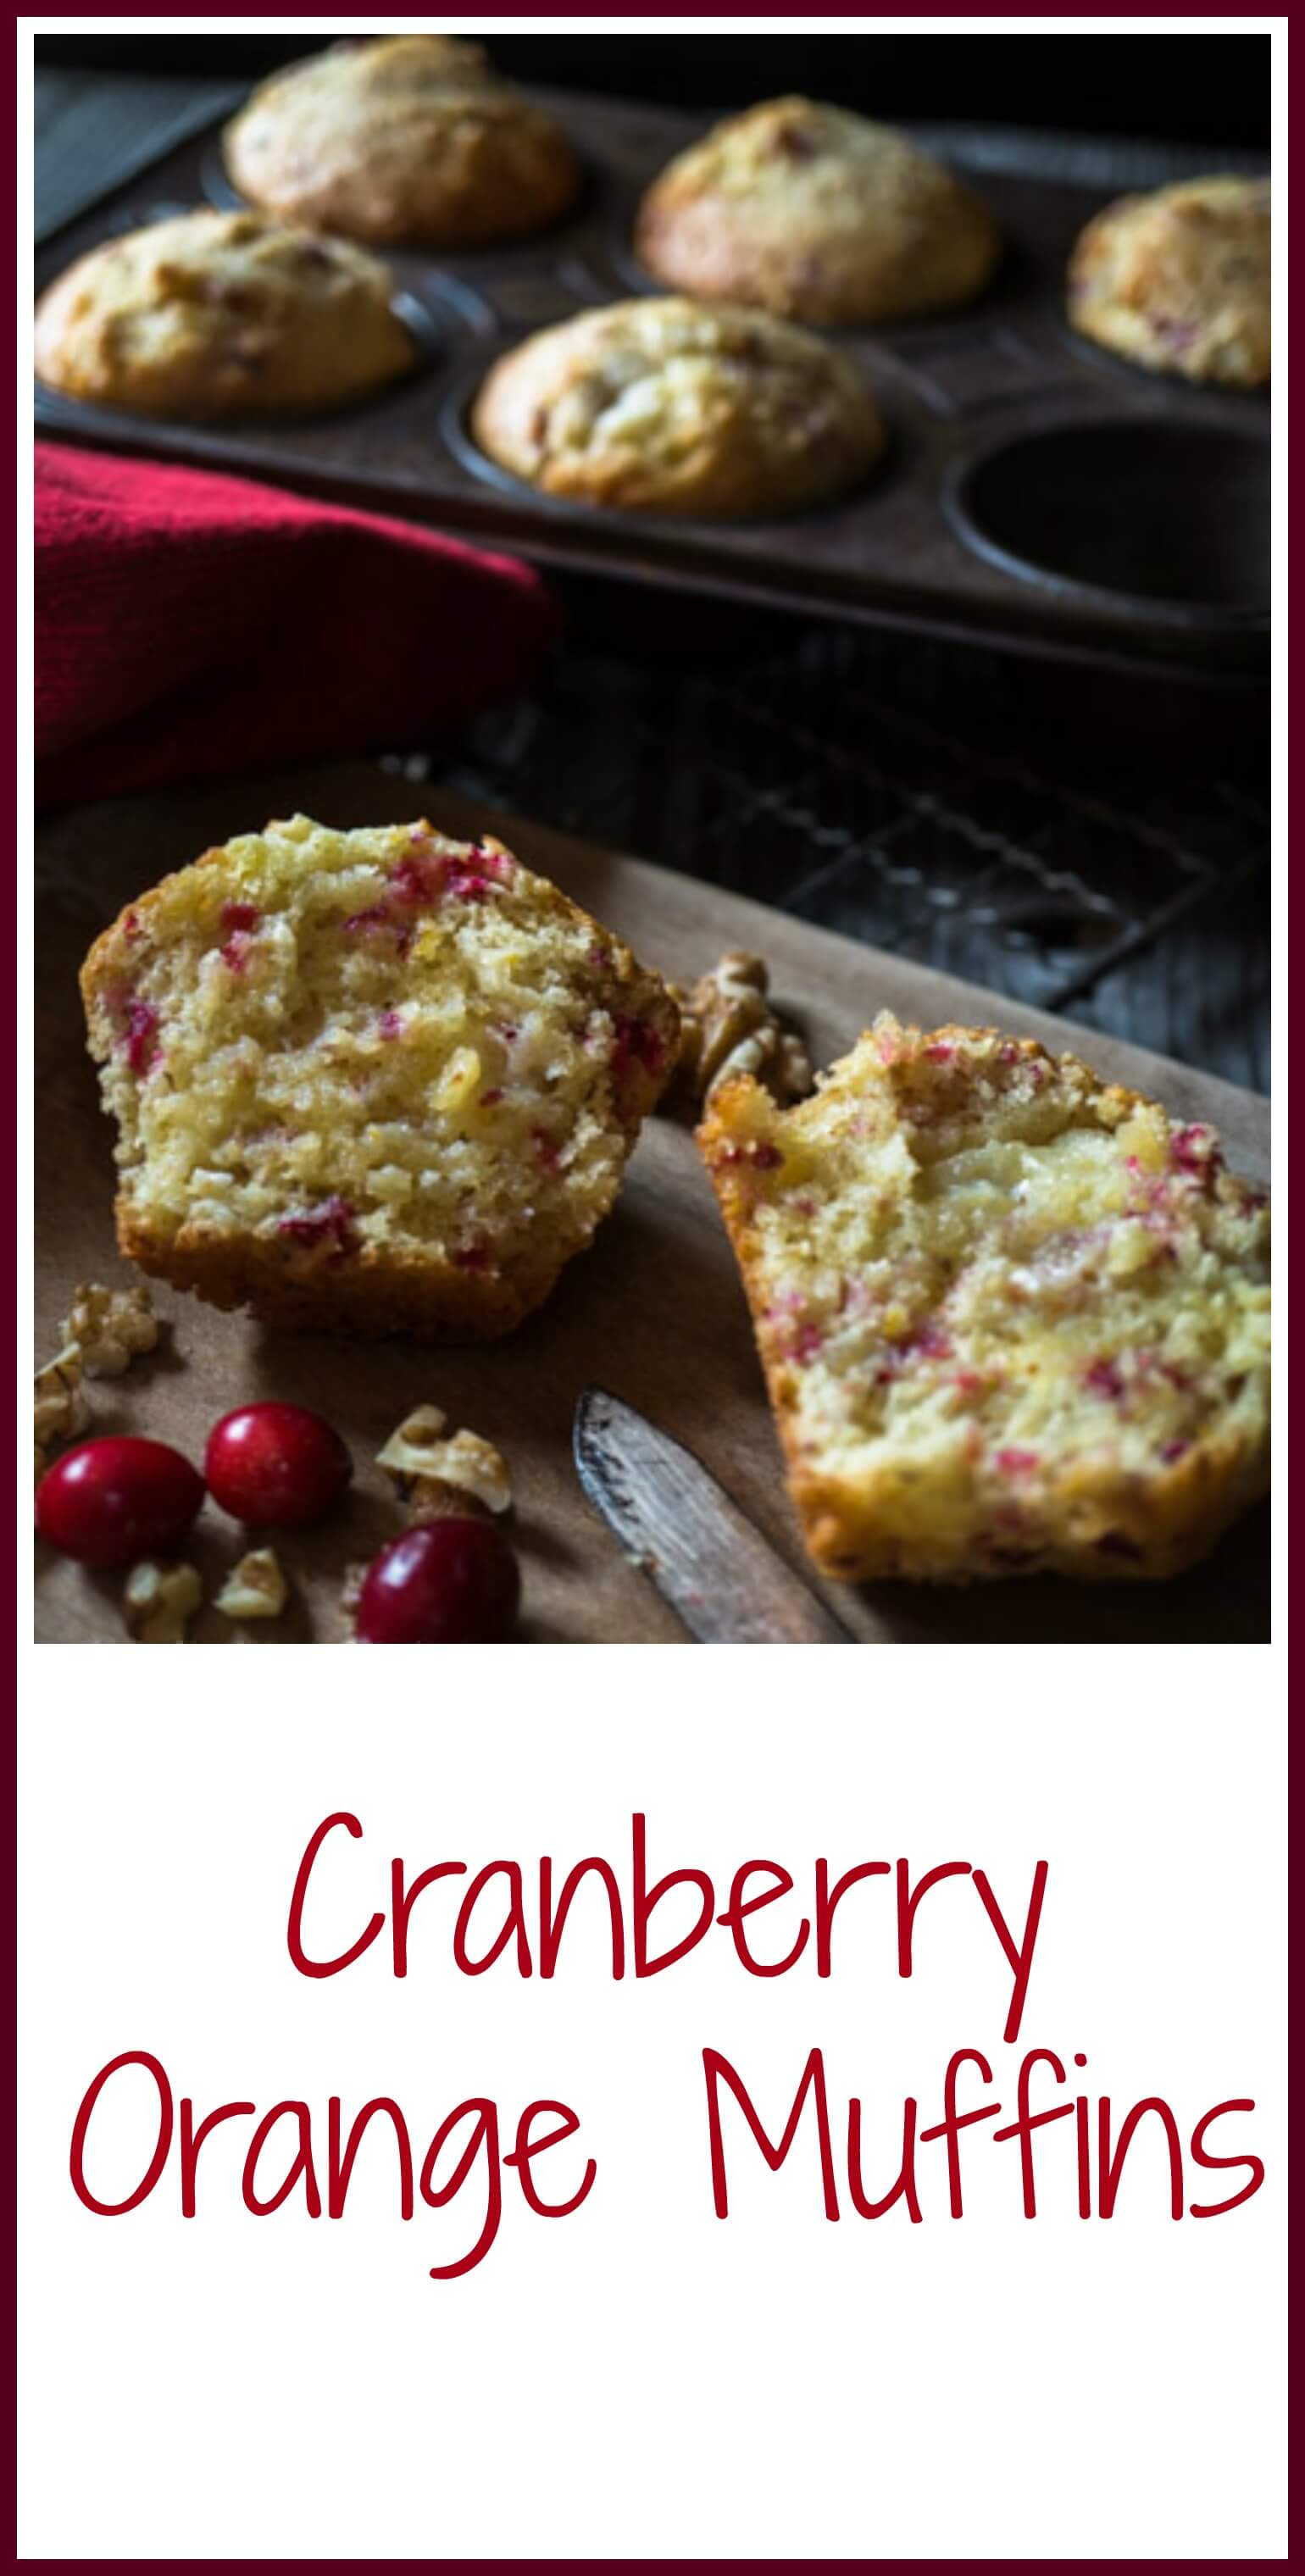 Soft and buttery Cranberry Orange muffins that are quick and easy. This muffin is perfect for breakfast, brunch, or anytime! #recipe #muffins #Homemade #bakery #holidayfood #yum